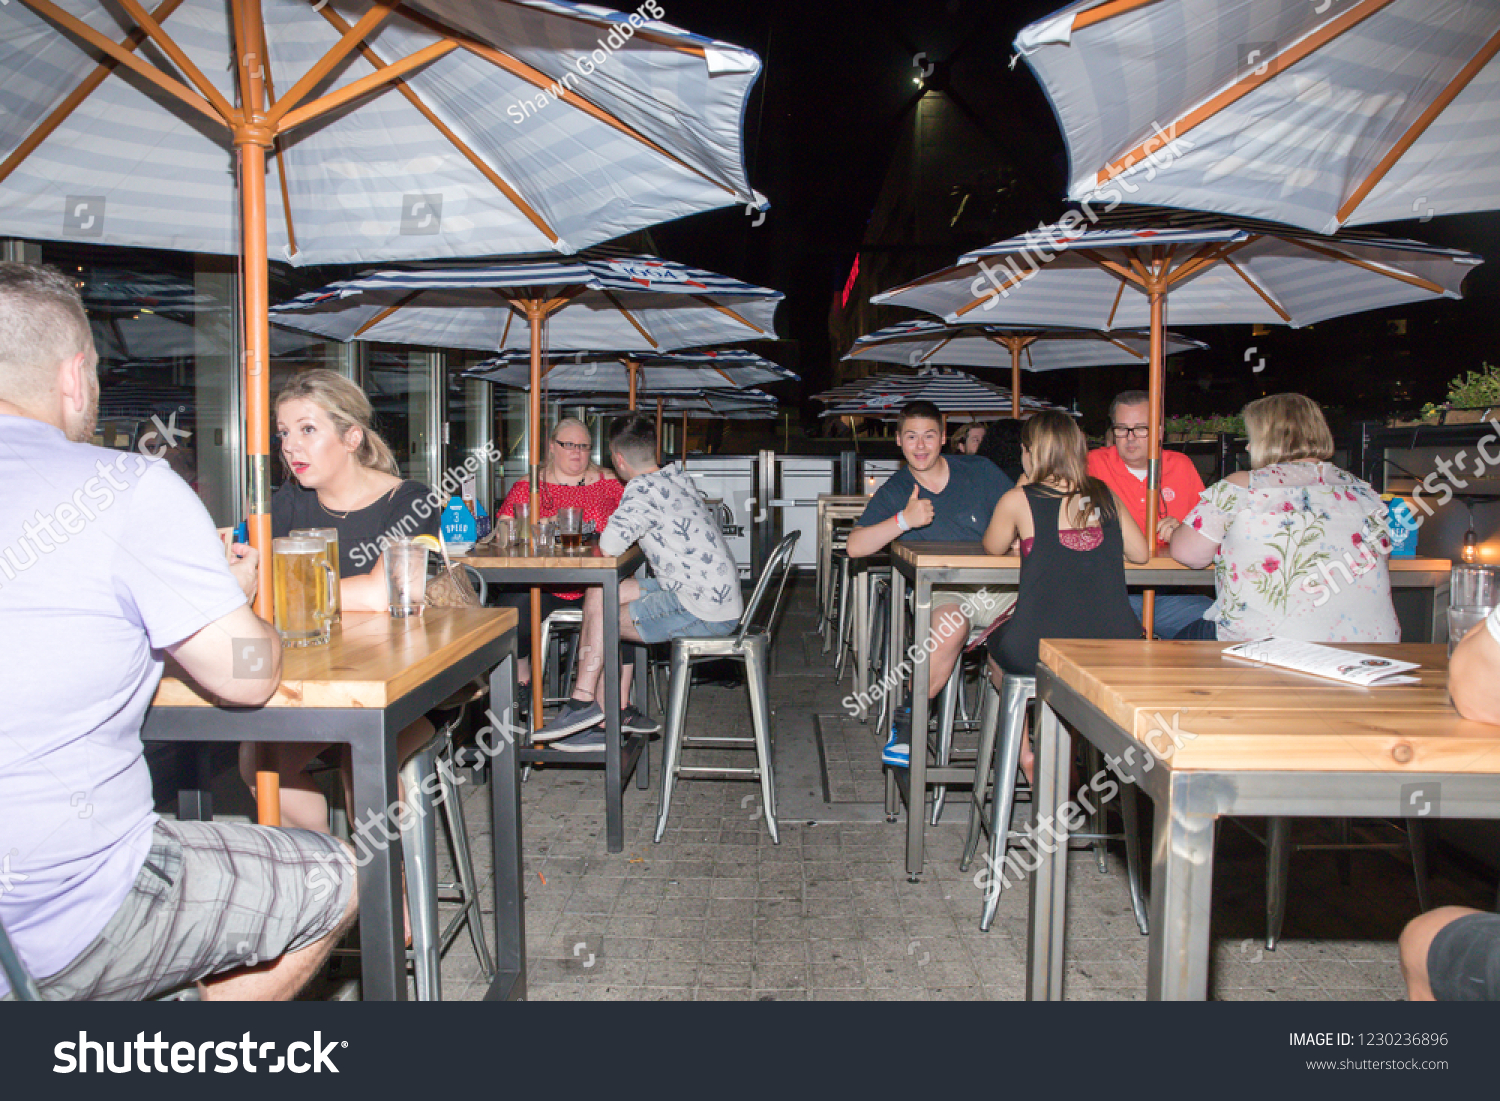 Toronto ontario canada june 15 2018 people have drinks and food